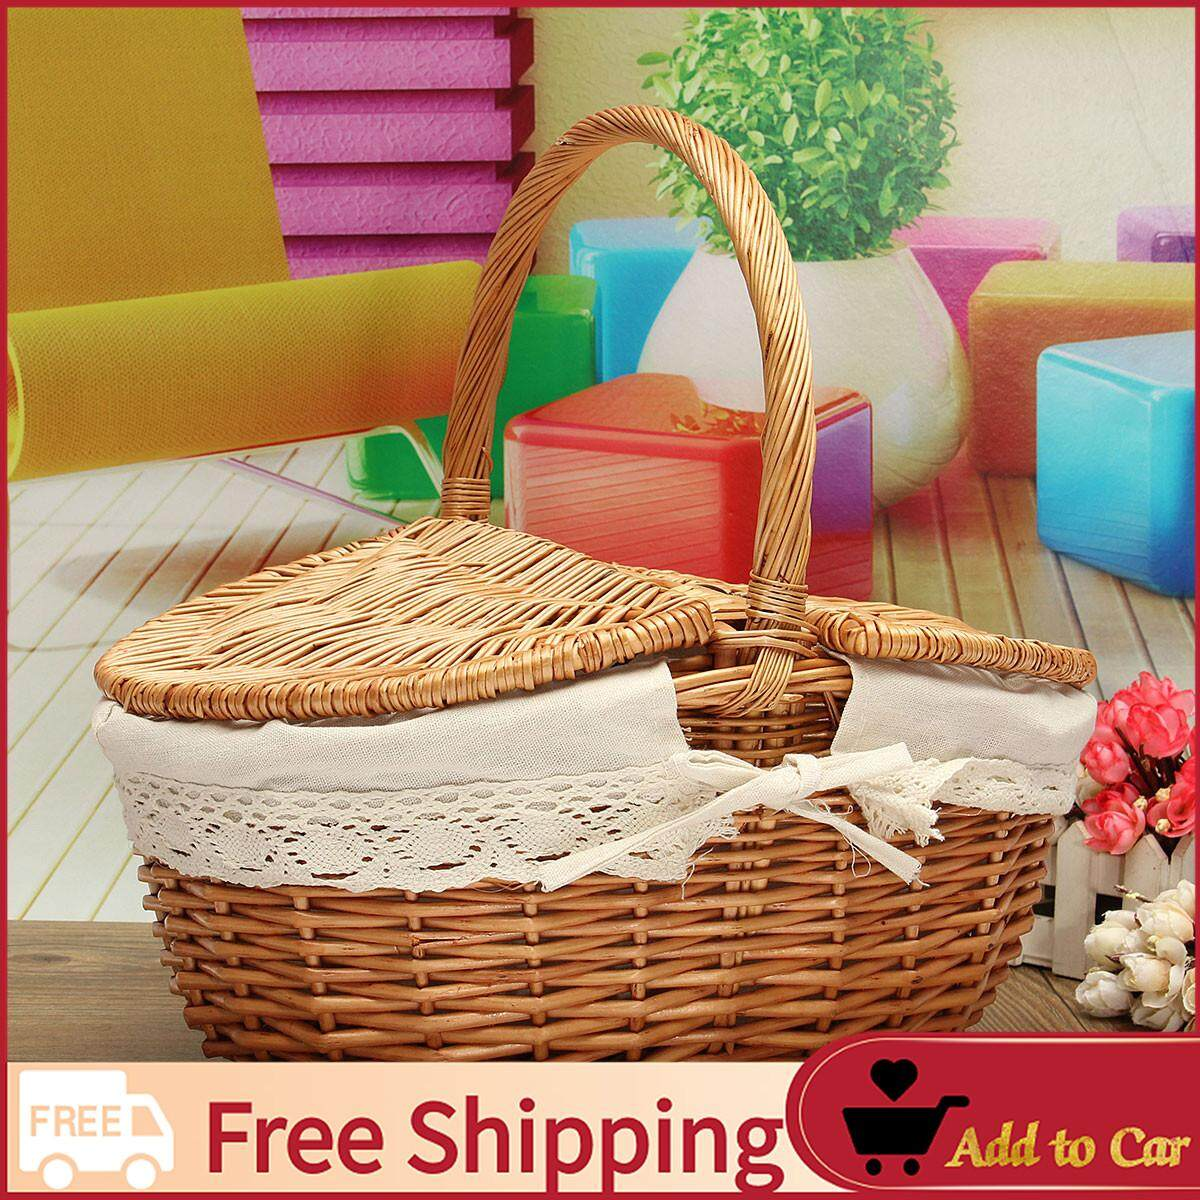 【free Shipping】up To 10kg Wicker Hand Picnic Storage Basket Shopping Hamper With Lid And Handle By Moonbeam.